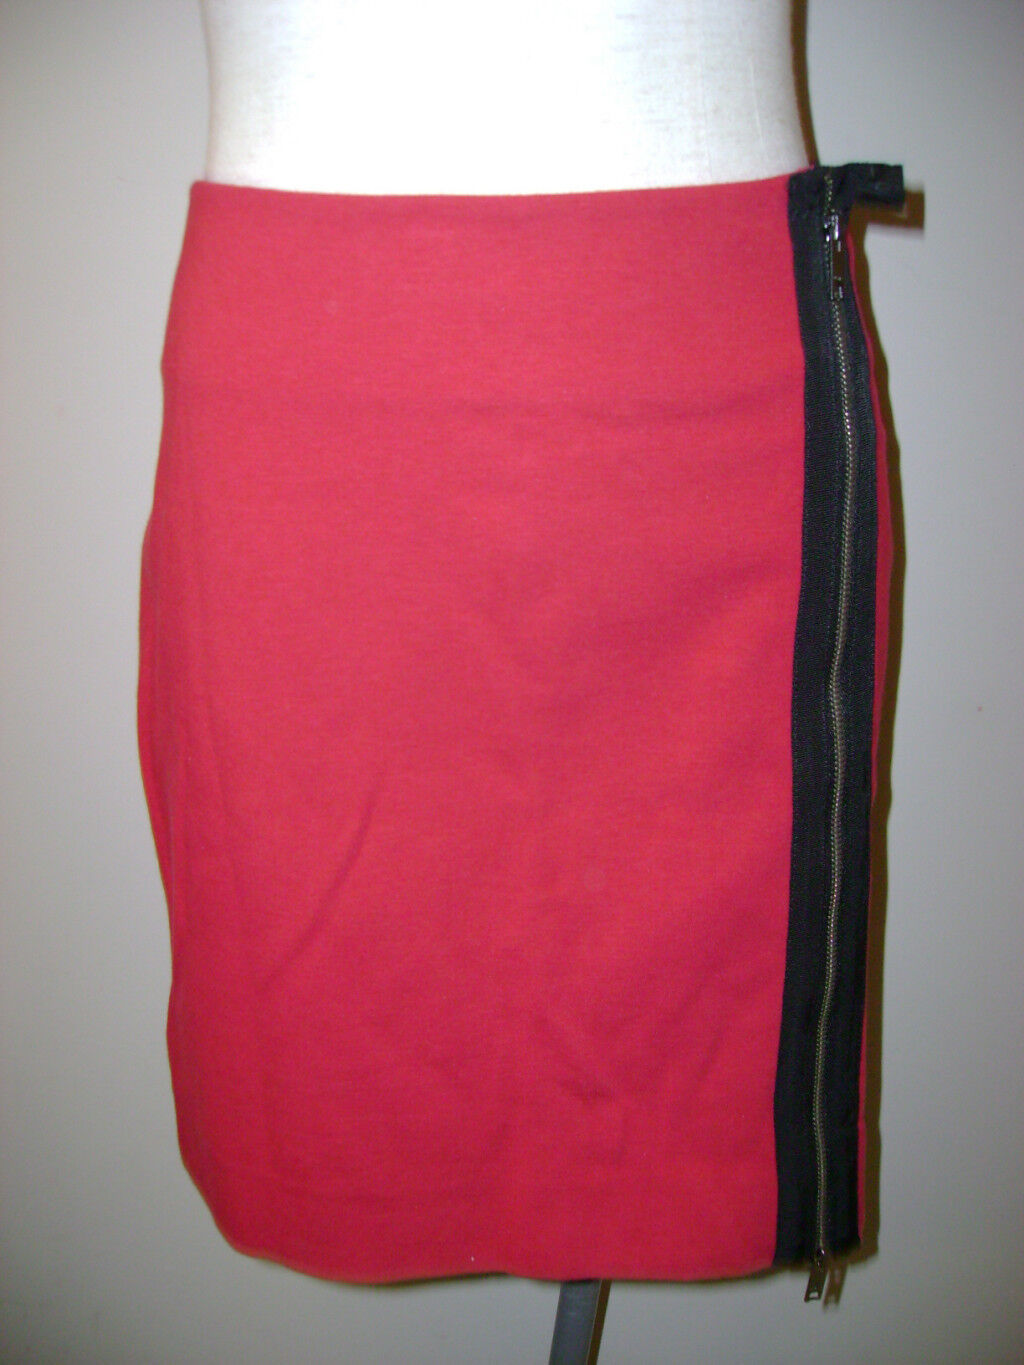 DKNY Short Red Skirt w  Visible Seam Zipper 10 NWT